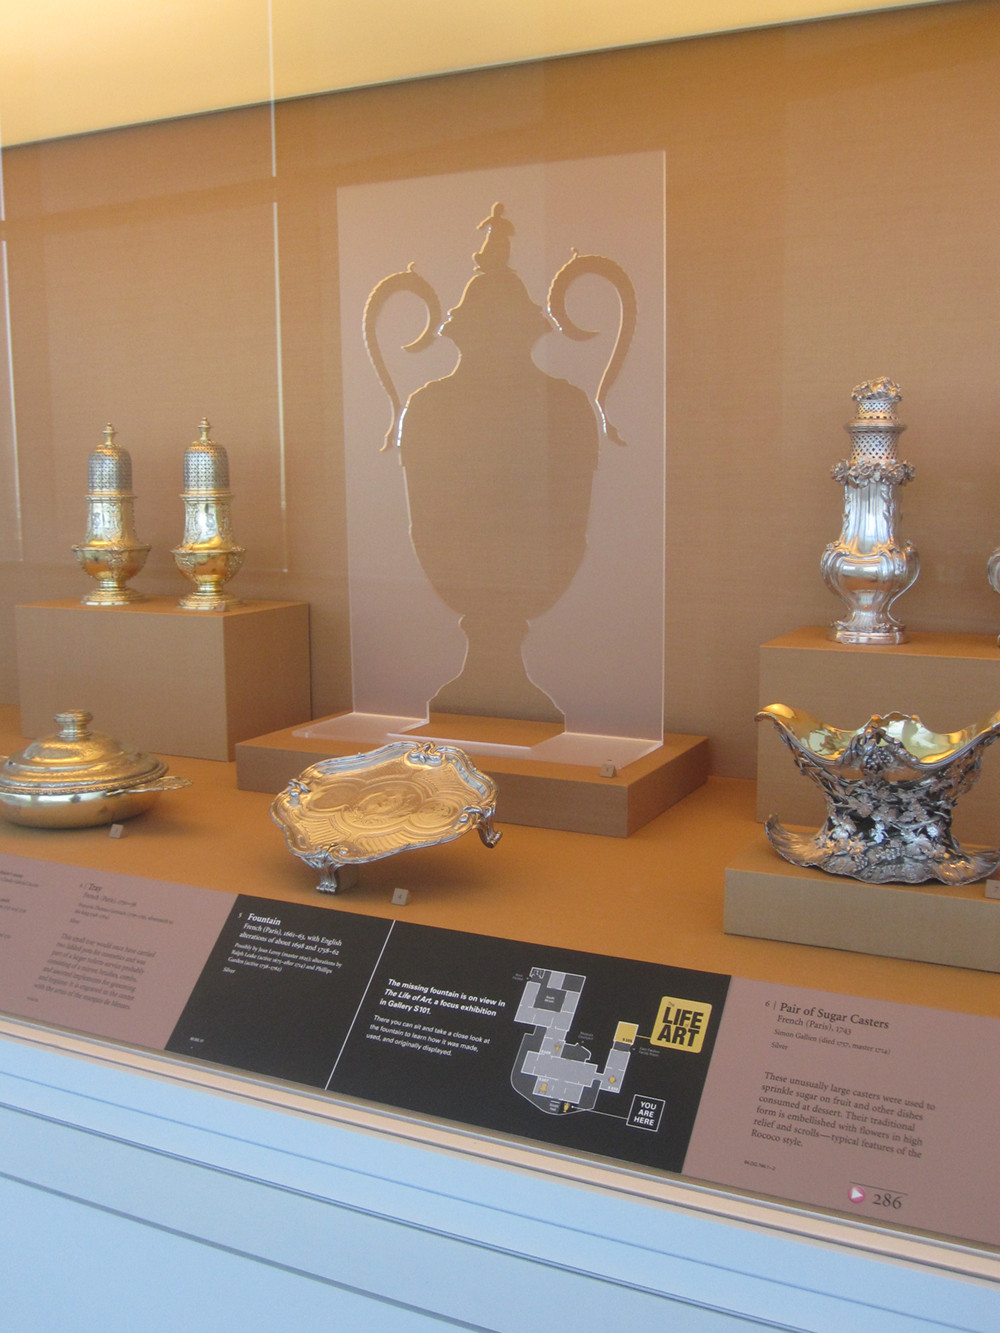 Plexi silhouettes indicated where the object had been in the permanent collection and promoted the exhibition.